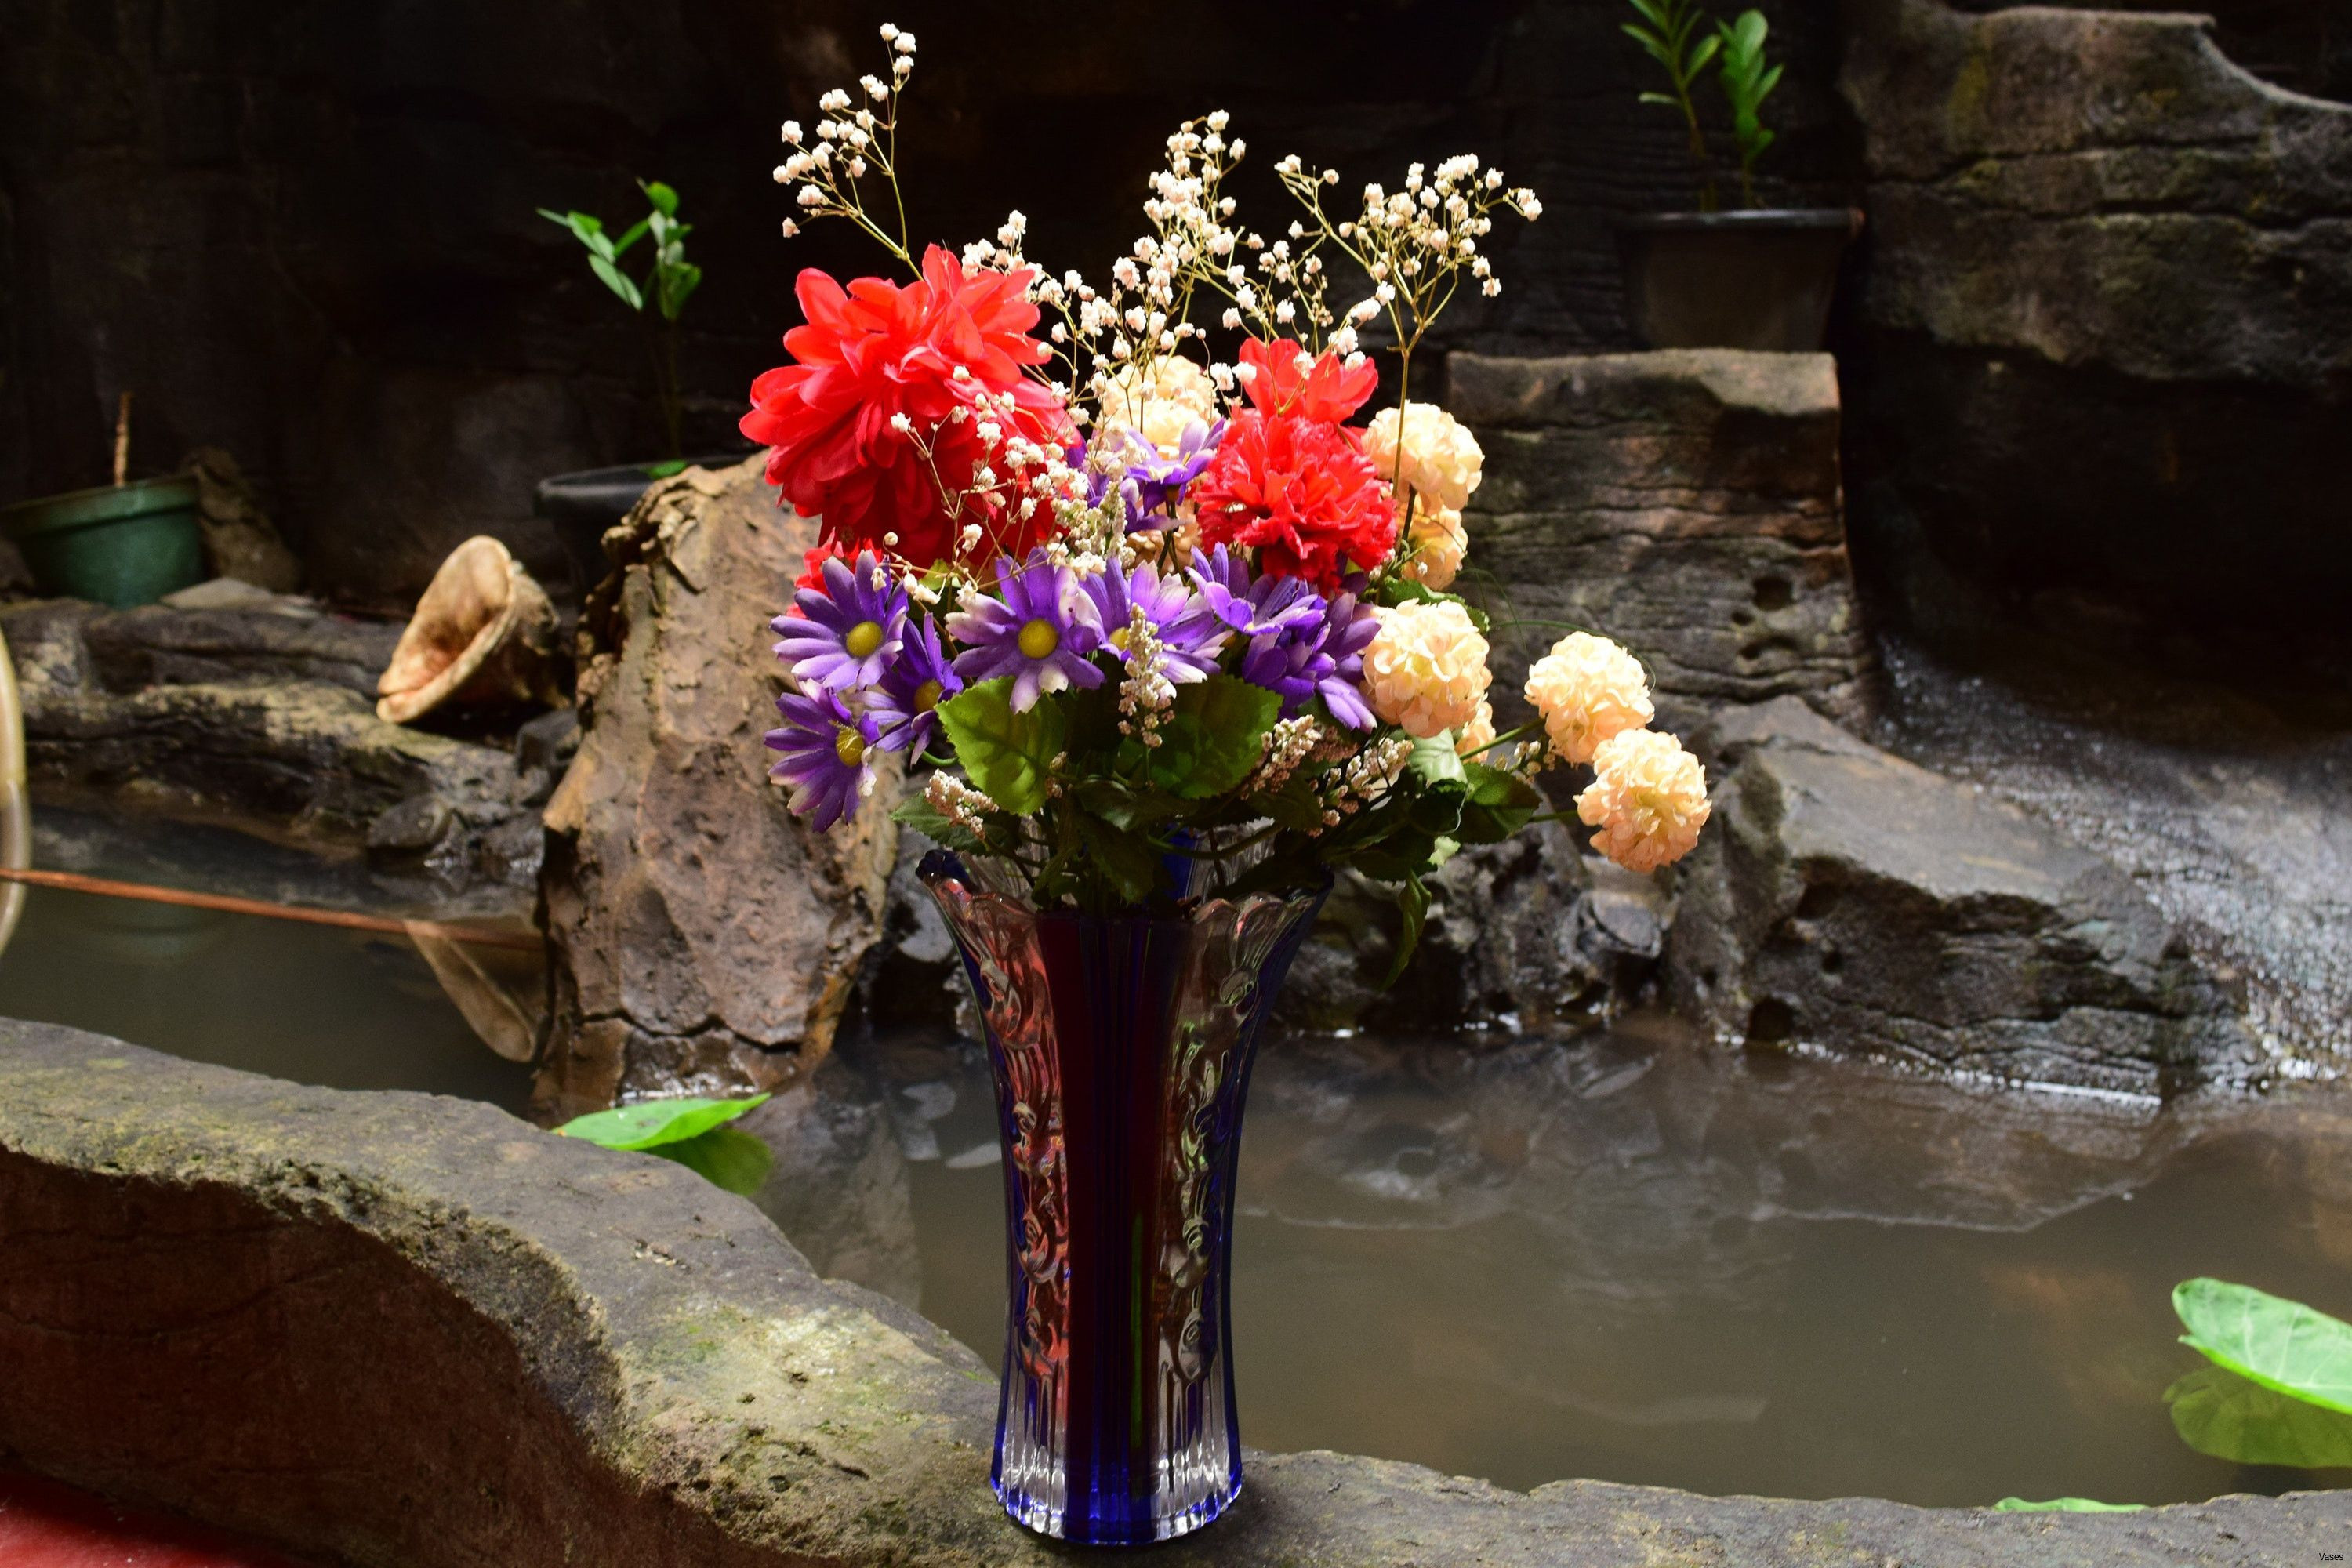 Wide Glass Vase Of 19 Gold Flower Vases the Weekly World Pertaining to Fbv Ingsoonh Vases Flowers by the Vase I 0d Sea Gold Beach oregon